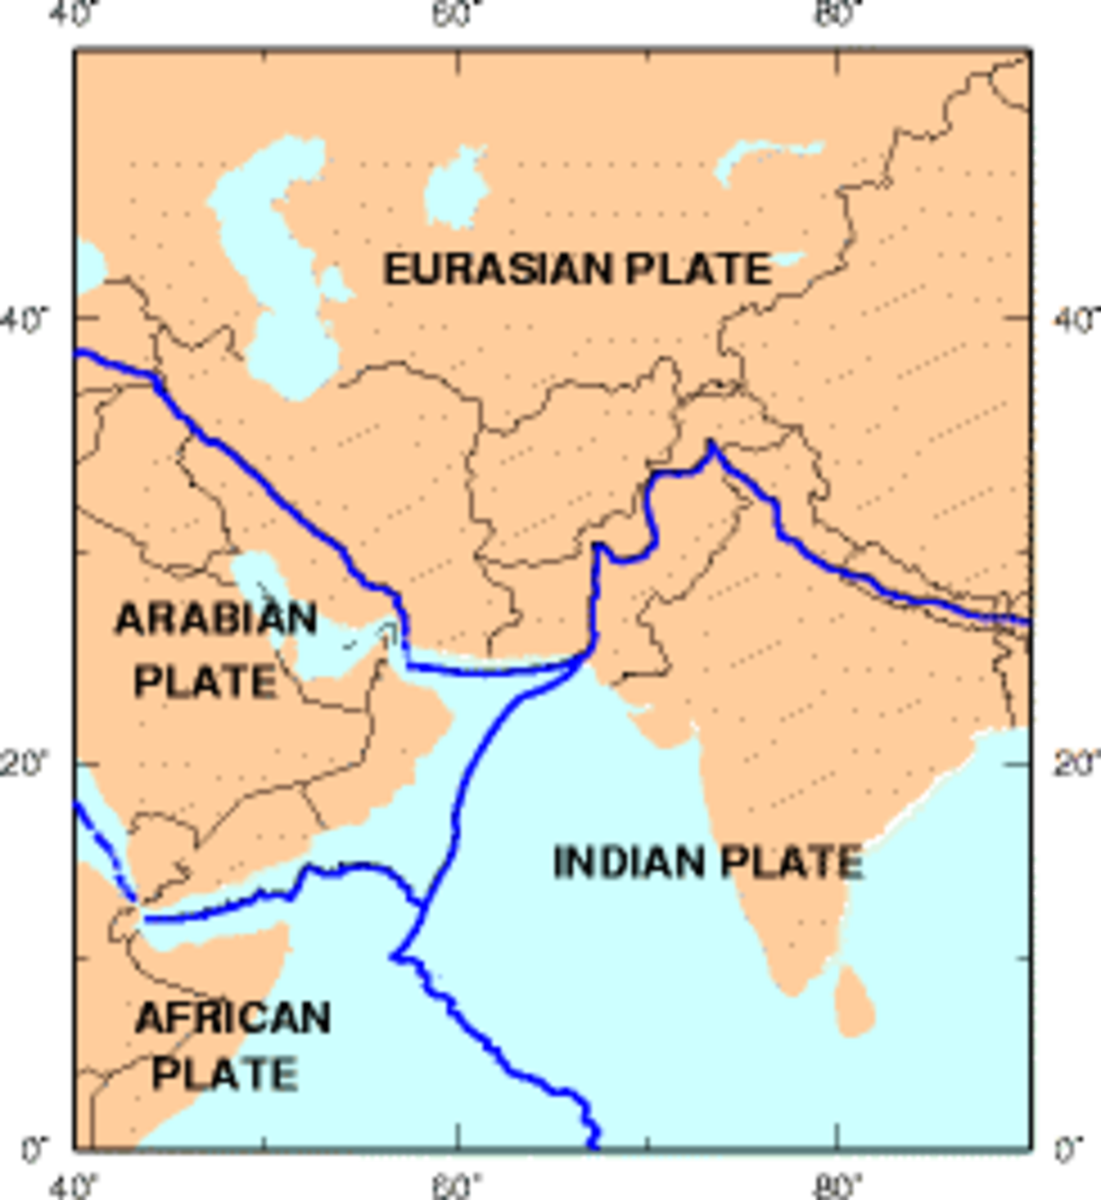 Tectonic plates. (Map: Public Domain)